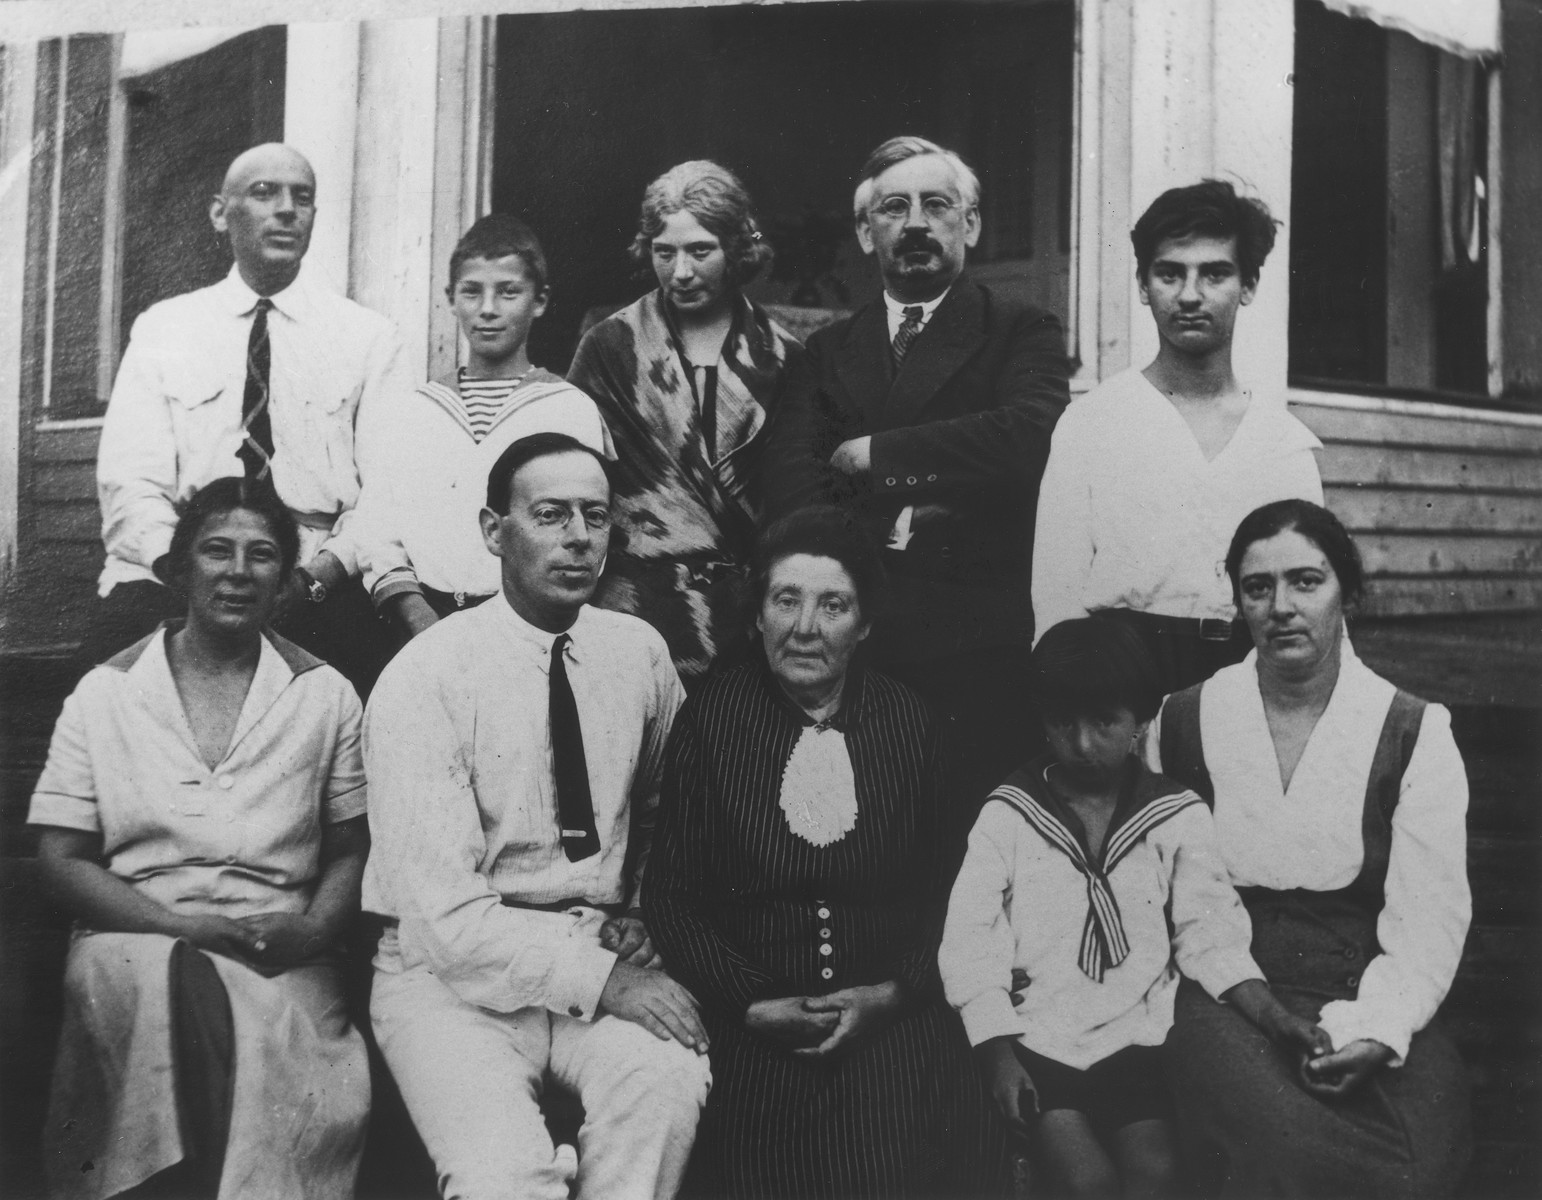 Group portrait of the Mikolaevsky family in front of their dacha in the village of Streina, a suburb of St. Petersburg.  Pictured standing in the back row (from left to right) are:  Sasha Mikolaevsky, Mark Magid, Emilia Mikolaevsky, Nathaniel Broido, and Alexander Mikolaevsky.  Sitting in the front row (from left to right) are: Maria Mikolaevsky Magid, her son Michael Magid, Fanya Mikolaevsky, Lev Broido, and Anna Mikolaevsky Broido.